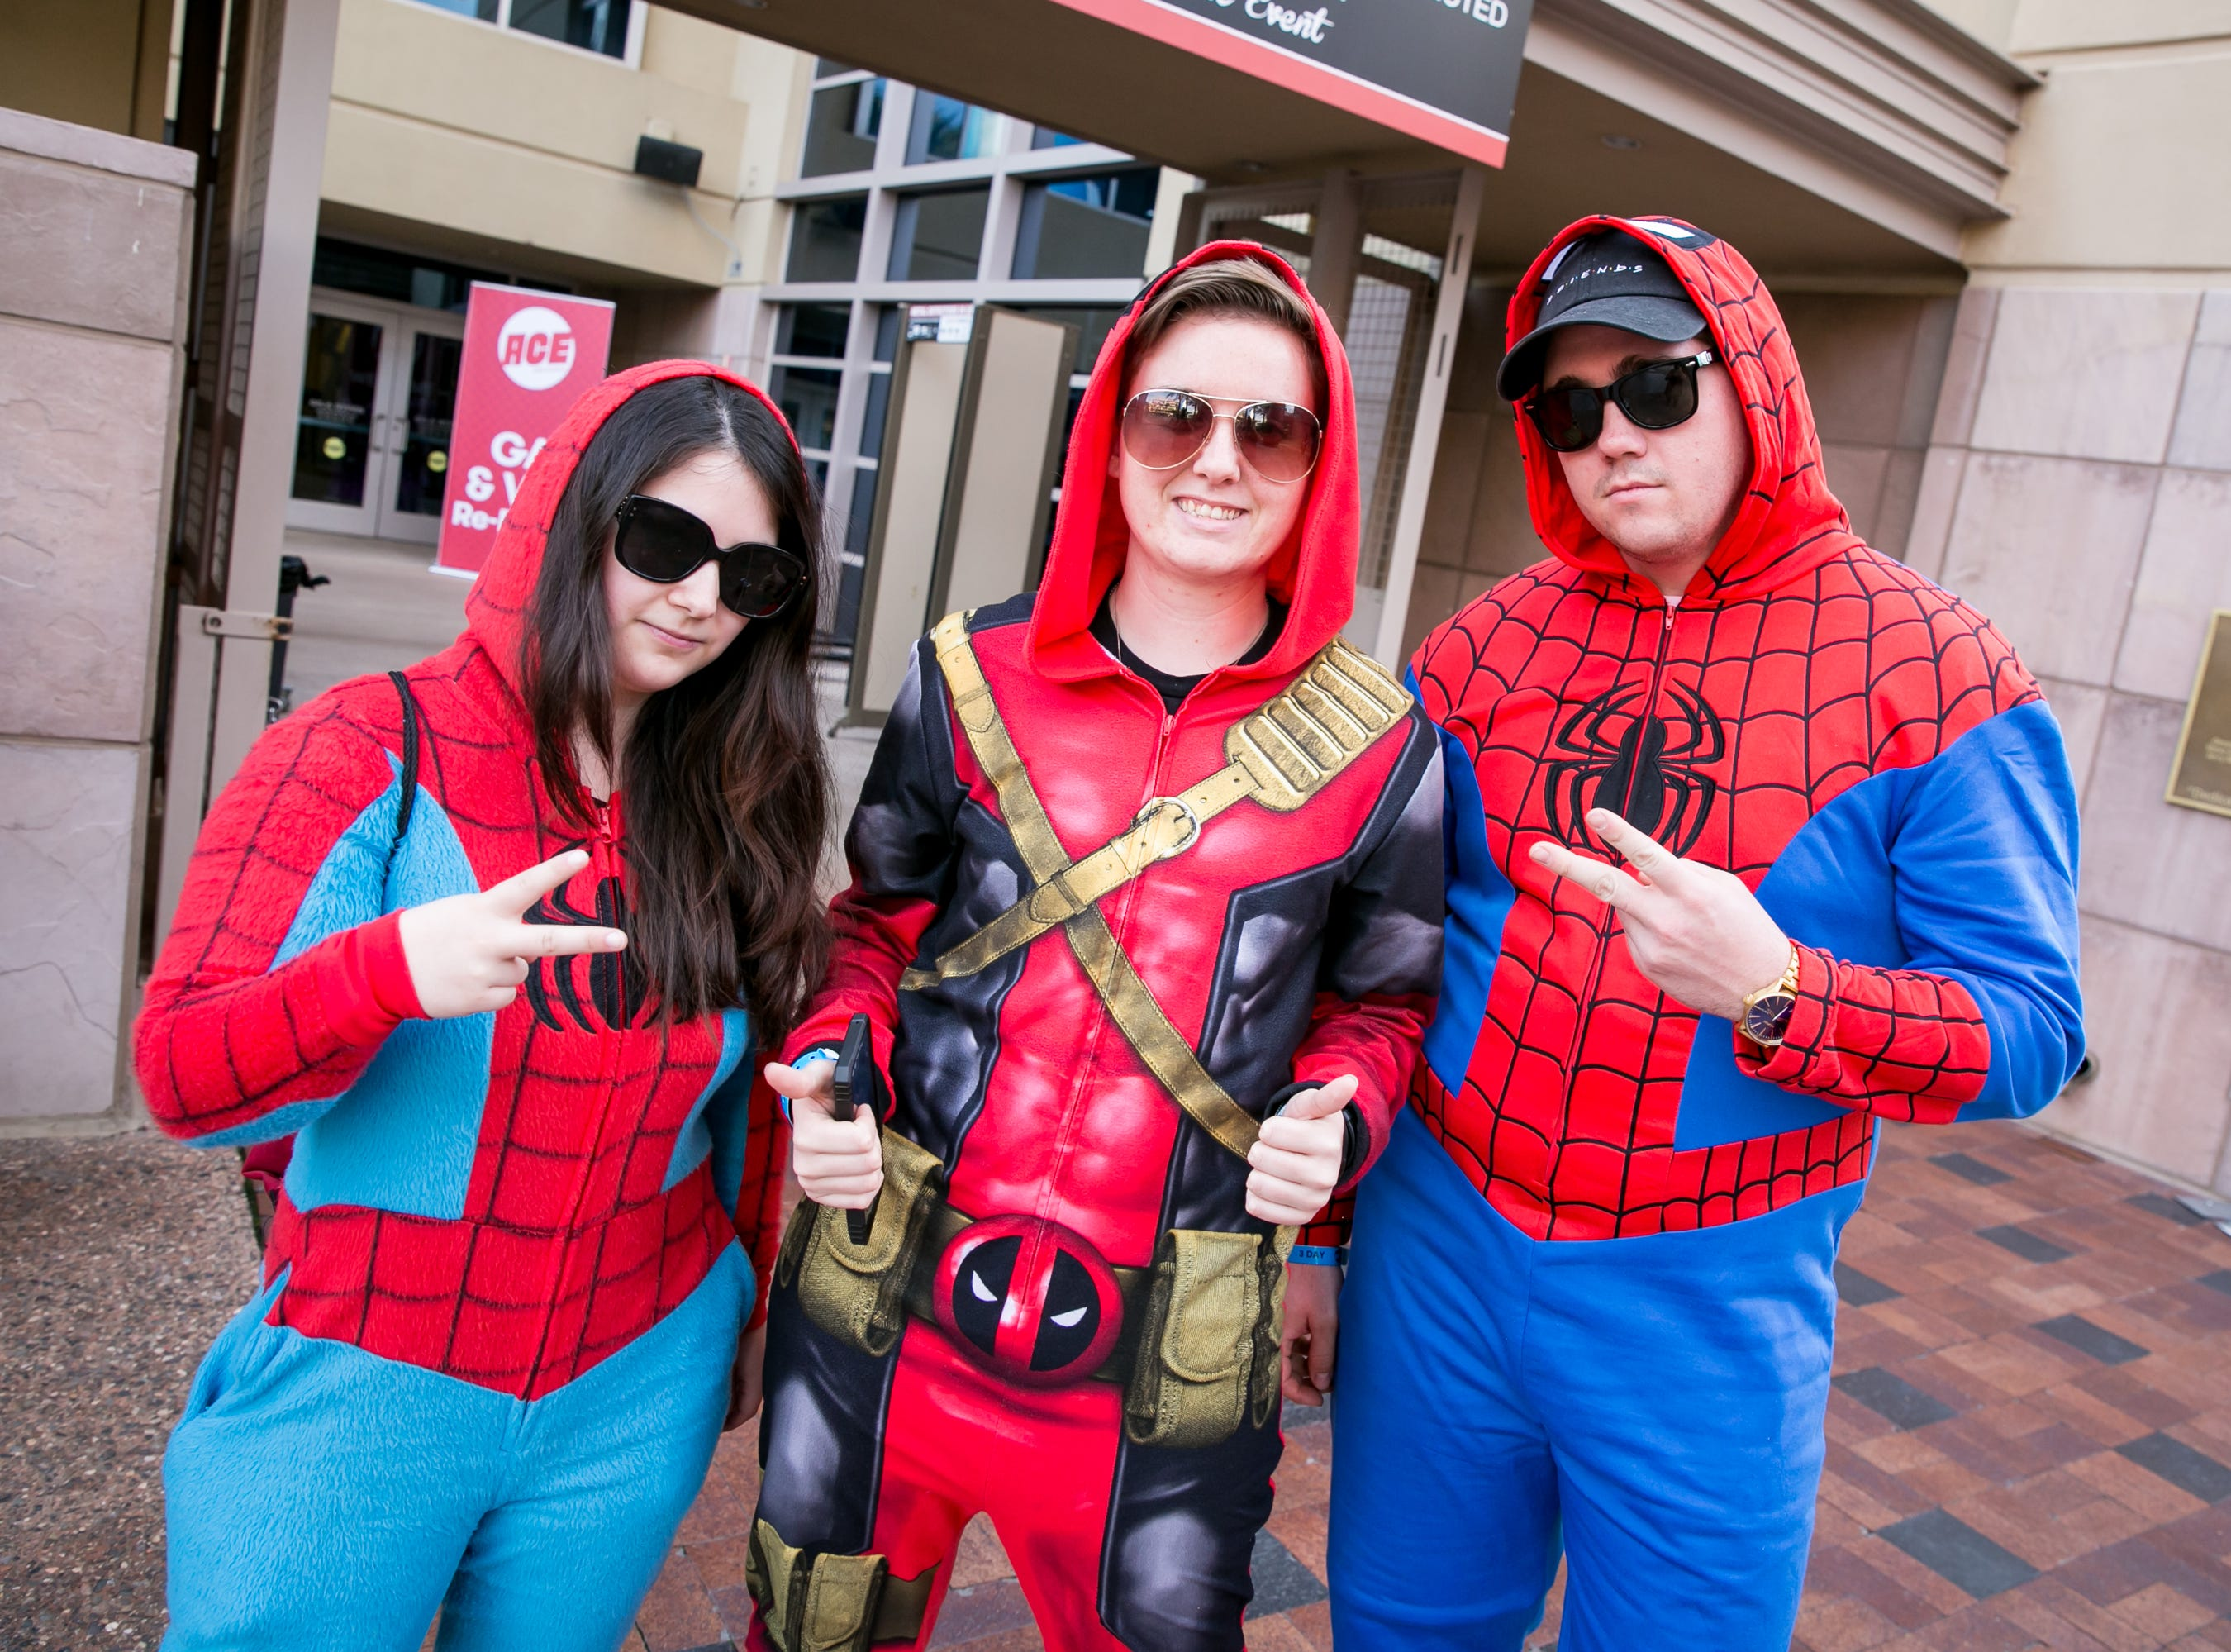 This crew kept it cool during Ace Comic Con at Gila River Arena in Glendale on Sunday, Jan. 13, 2019.